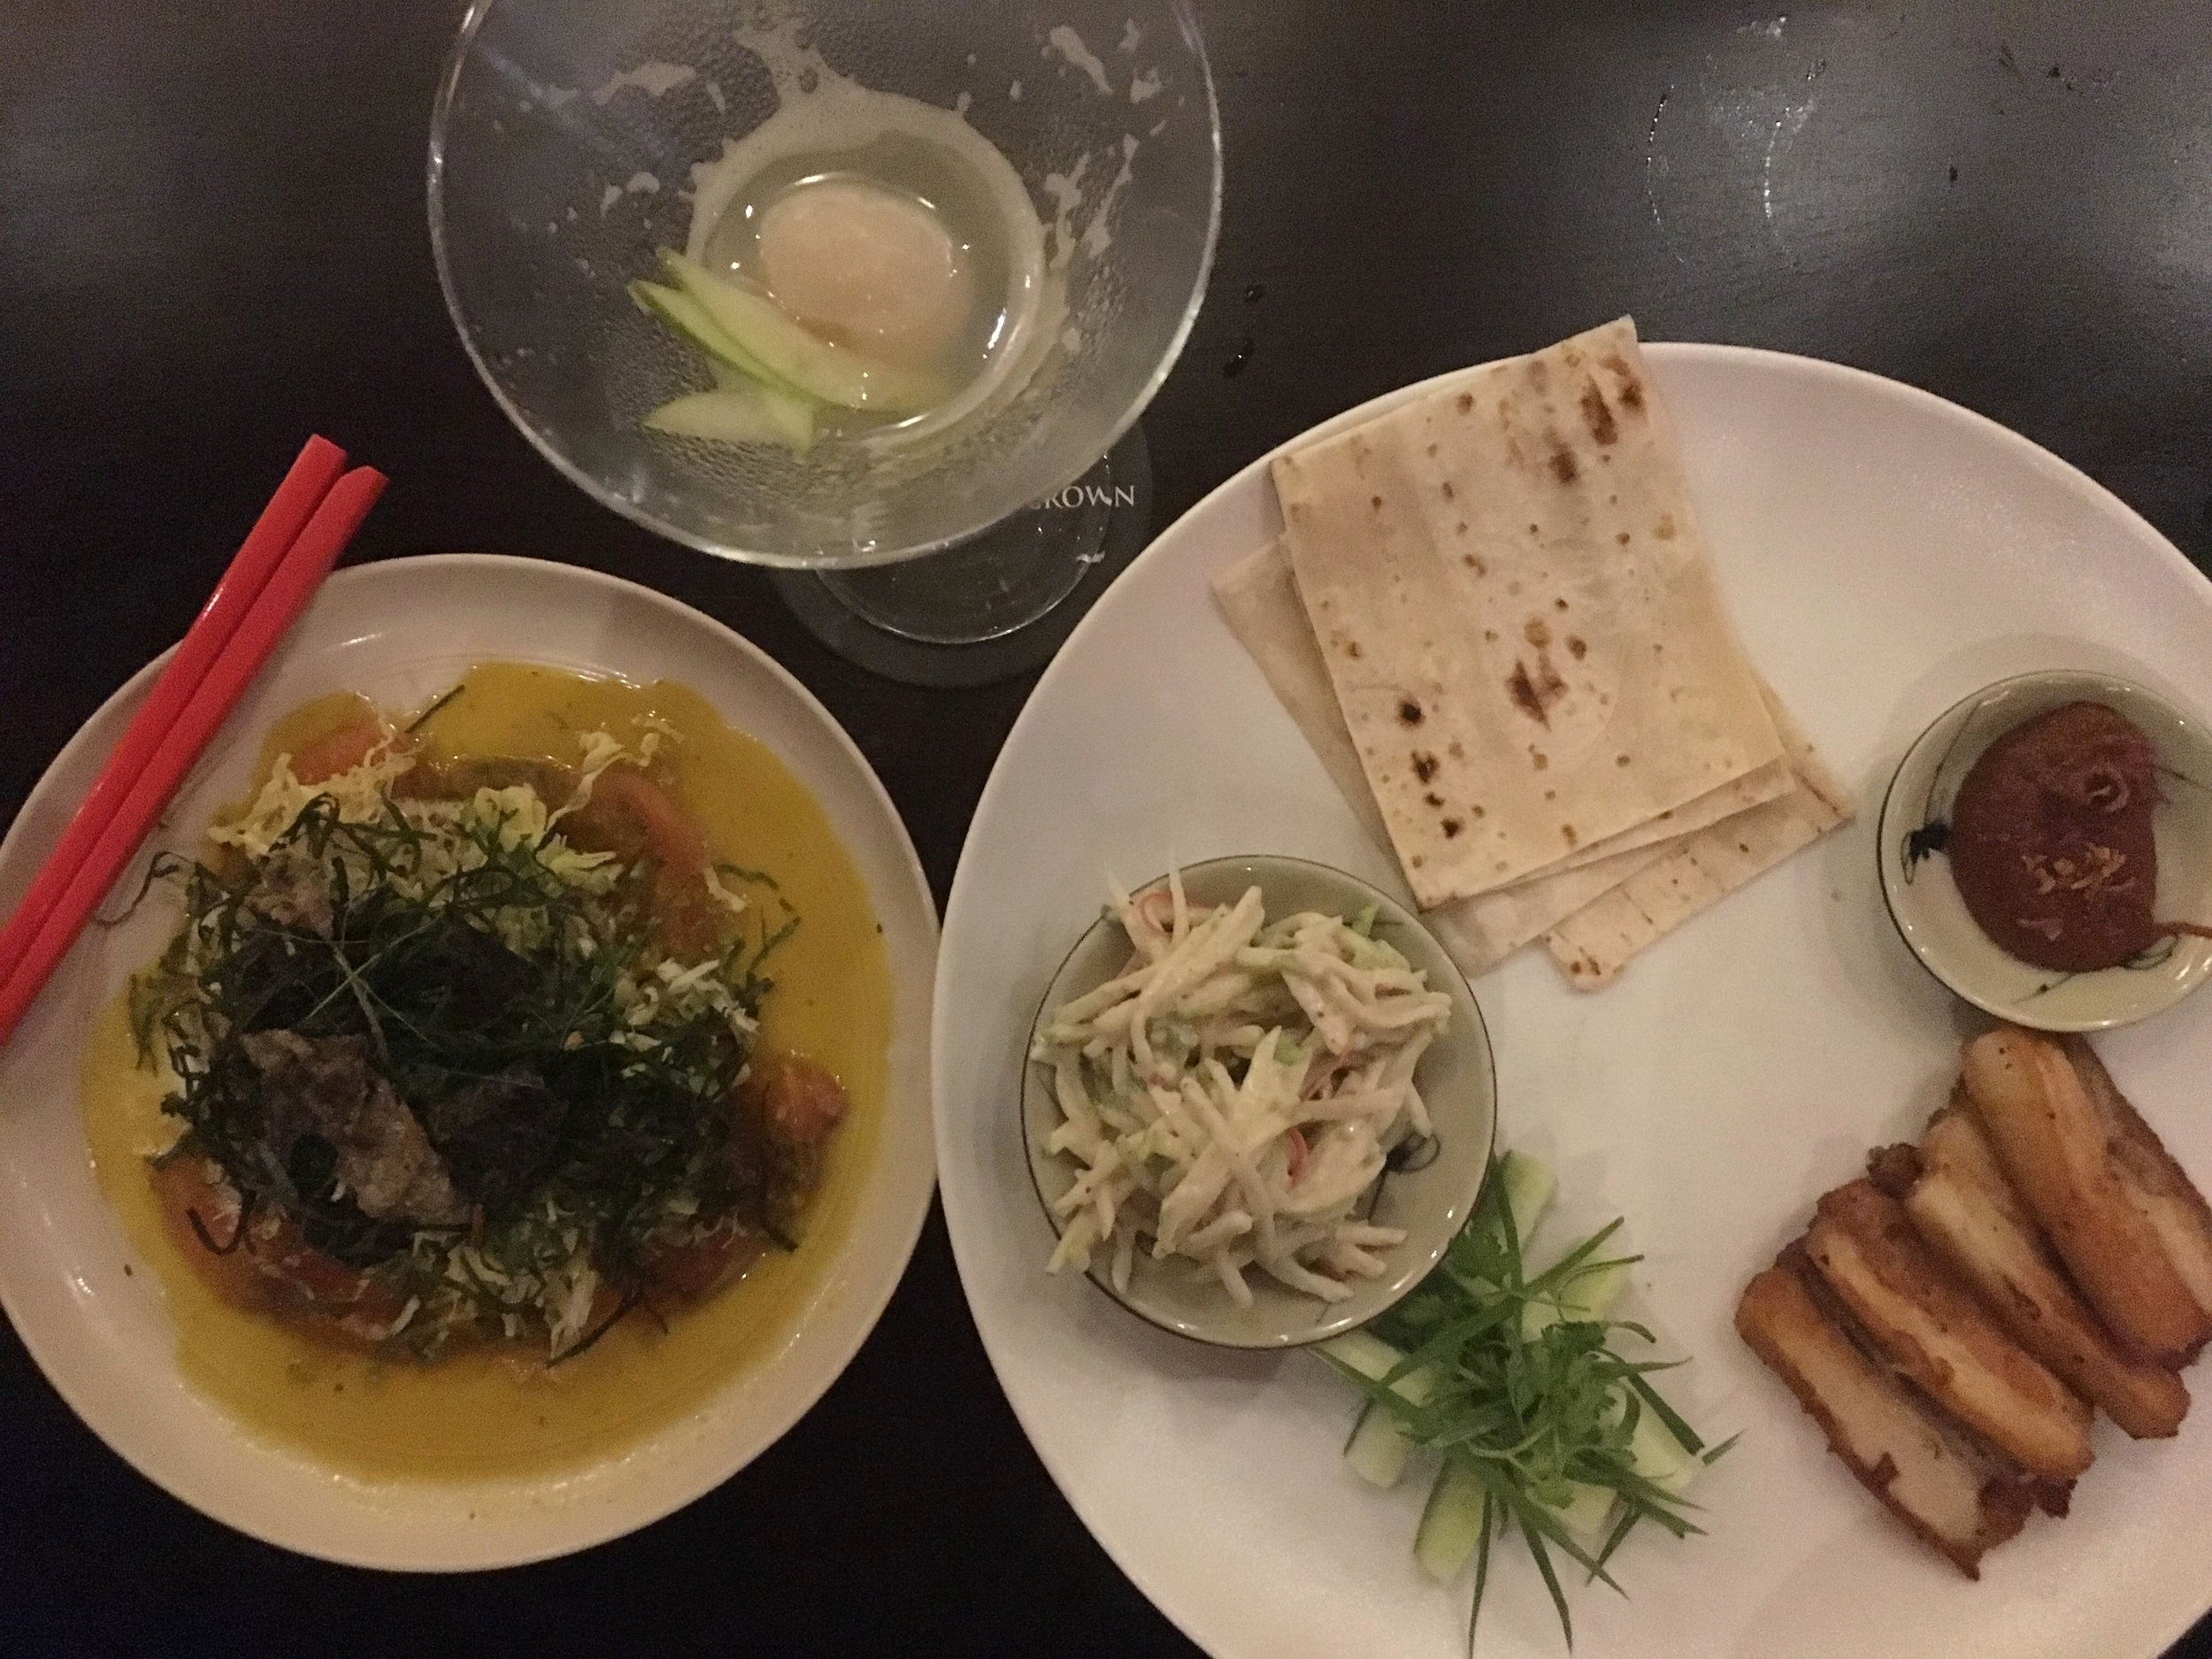 Salmon sashimi, with citrus, coconut and orange dressing, herb salad, crispy nori, shredded cabbage and crispy fish skin.  Sliced pork belly, soft tortilla wrap, served with a spicy, plum and tomato jam, Asian coleslaw and cucumber and spring onion.